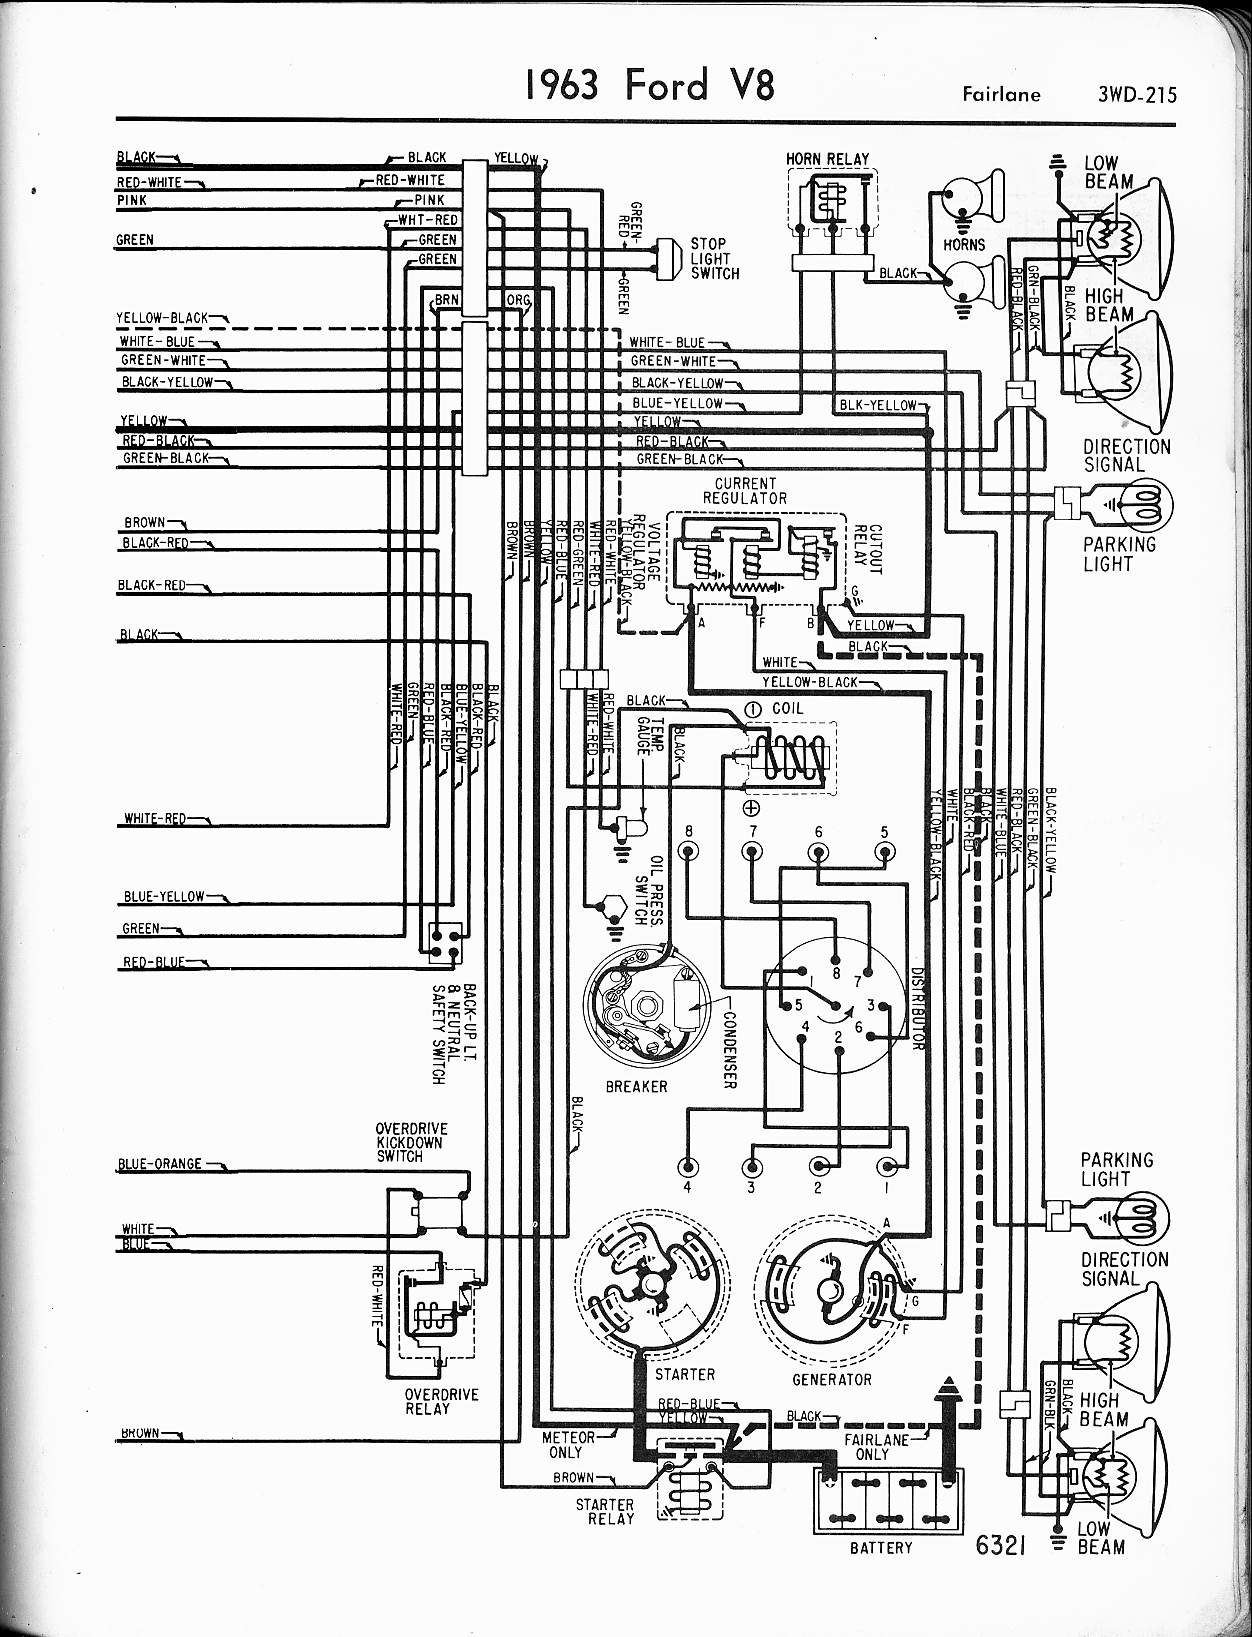 1955 Ford Thunderbird Fuse Box Location Wiring Diagram Libraries Where Is The On A 2003 Explorer Diagrams One1963 Galaxie